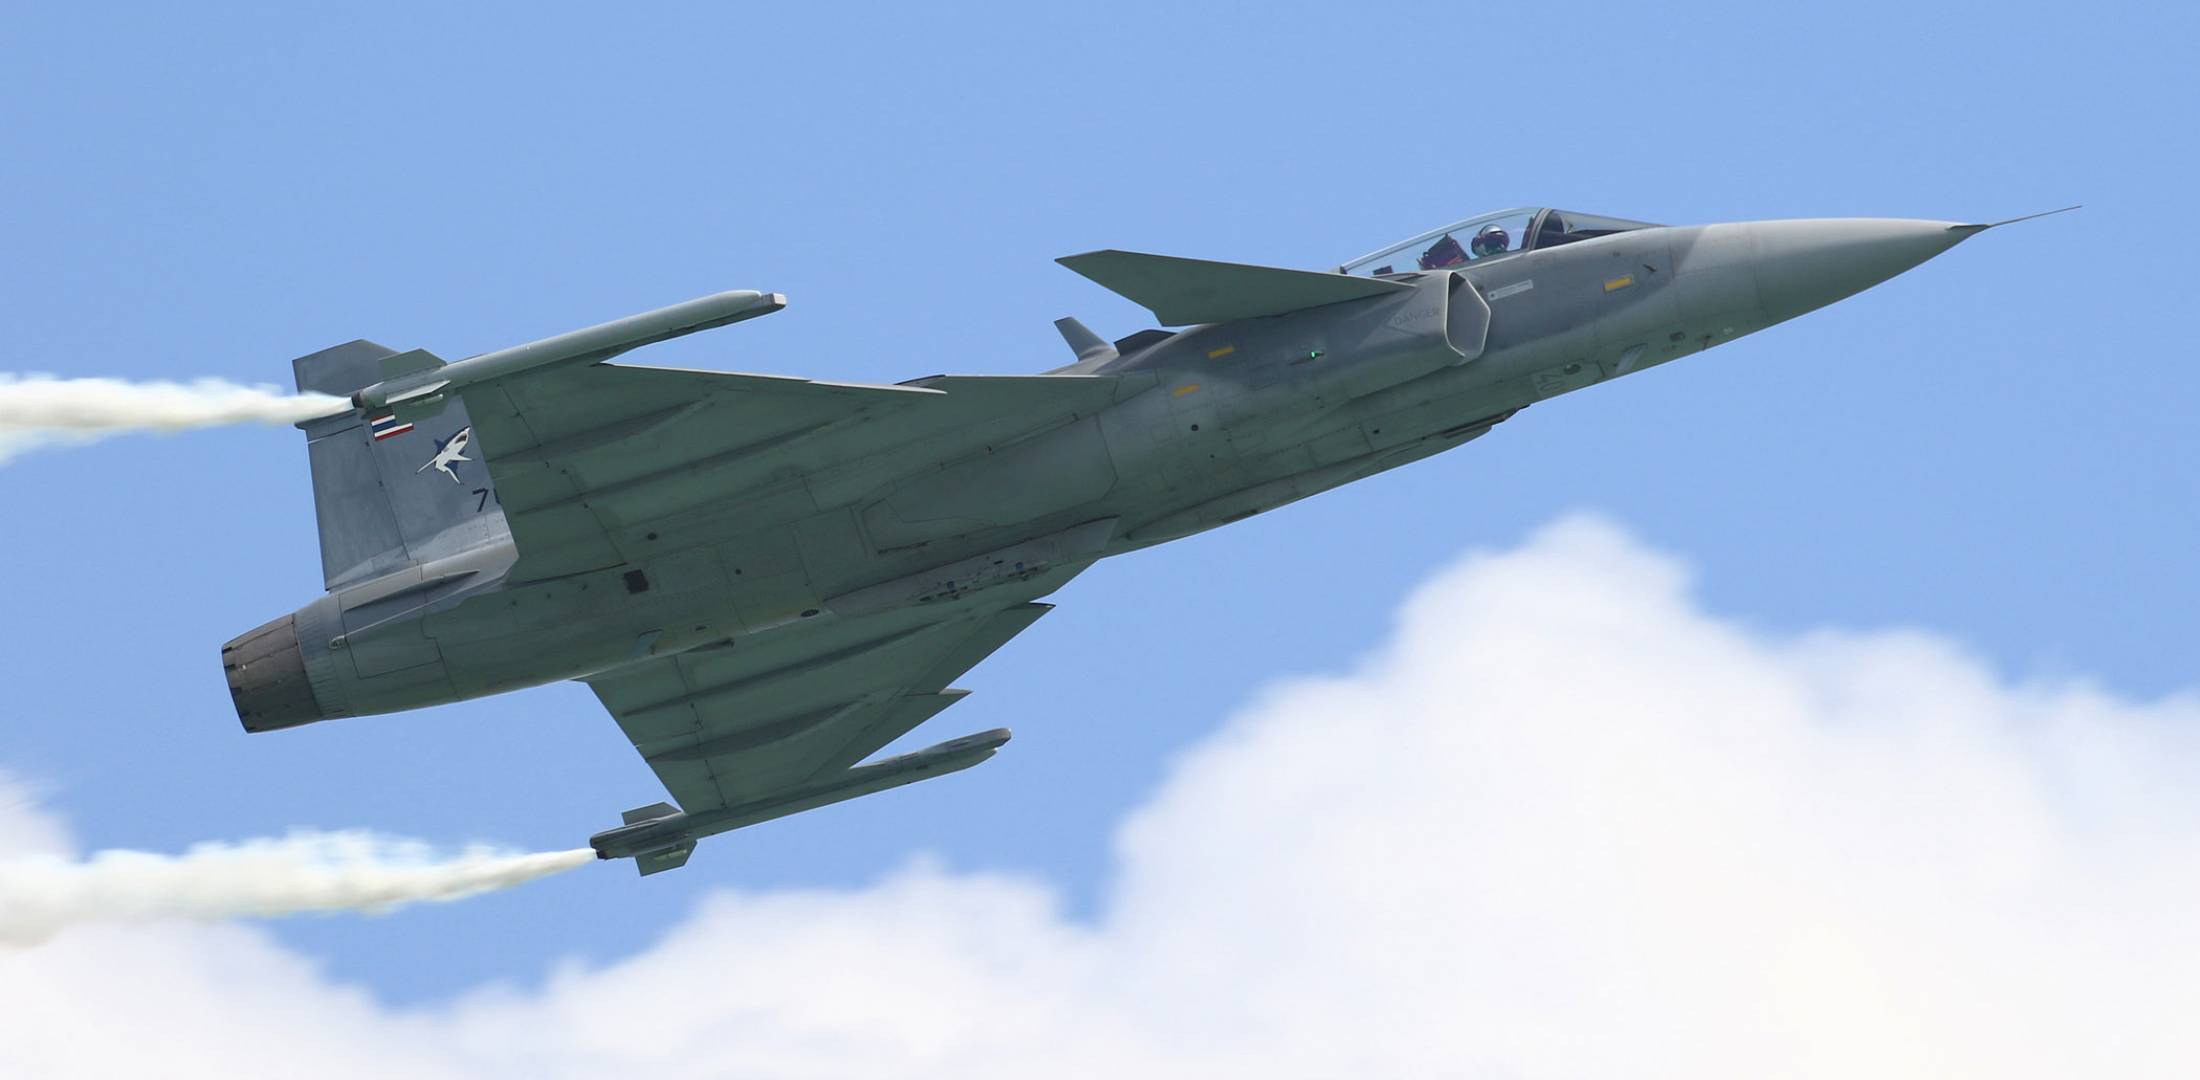 The Royal Thai Air Force (RTAF) debuted the Saab JAS 39C